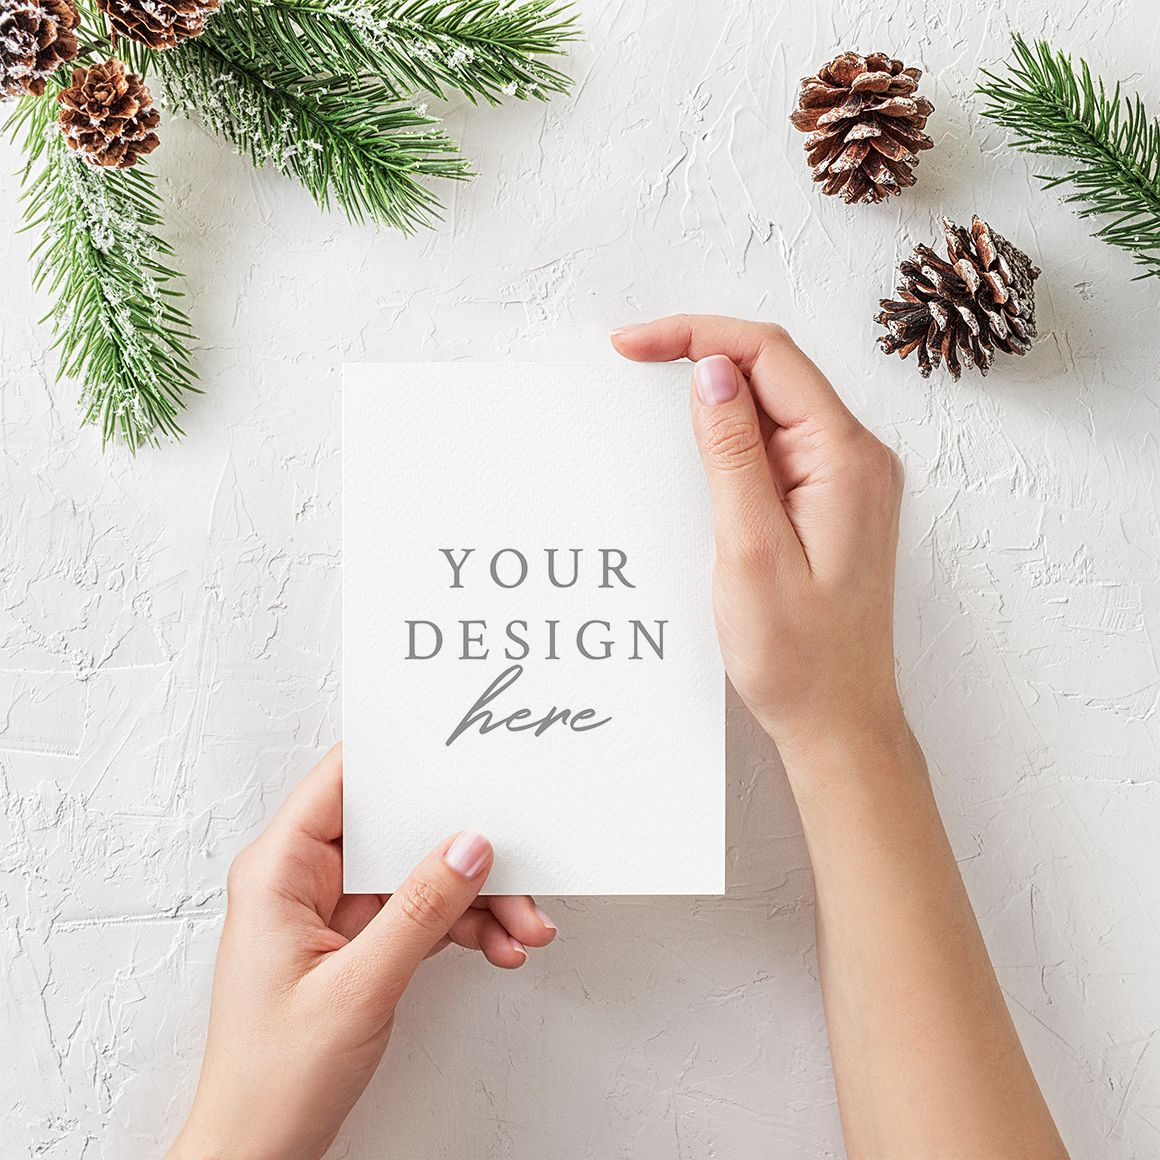 Free Christmas Greeting Card Mockup Pixelify Free Christmas Greeting Cards Christmas Card Images Christmas Cards